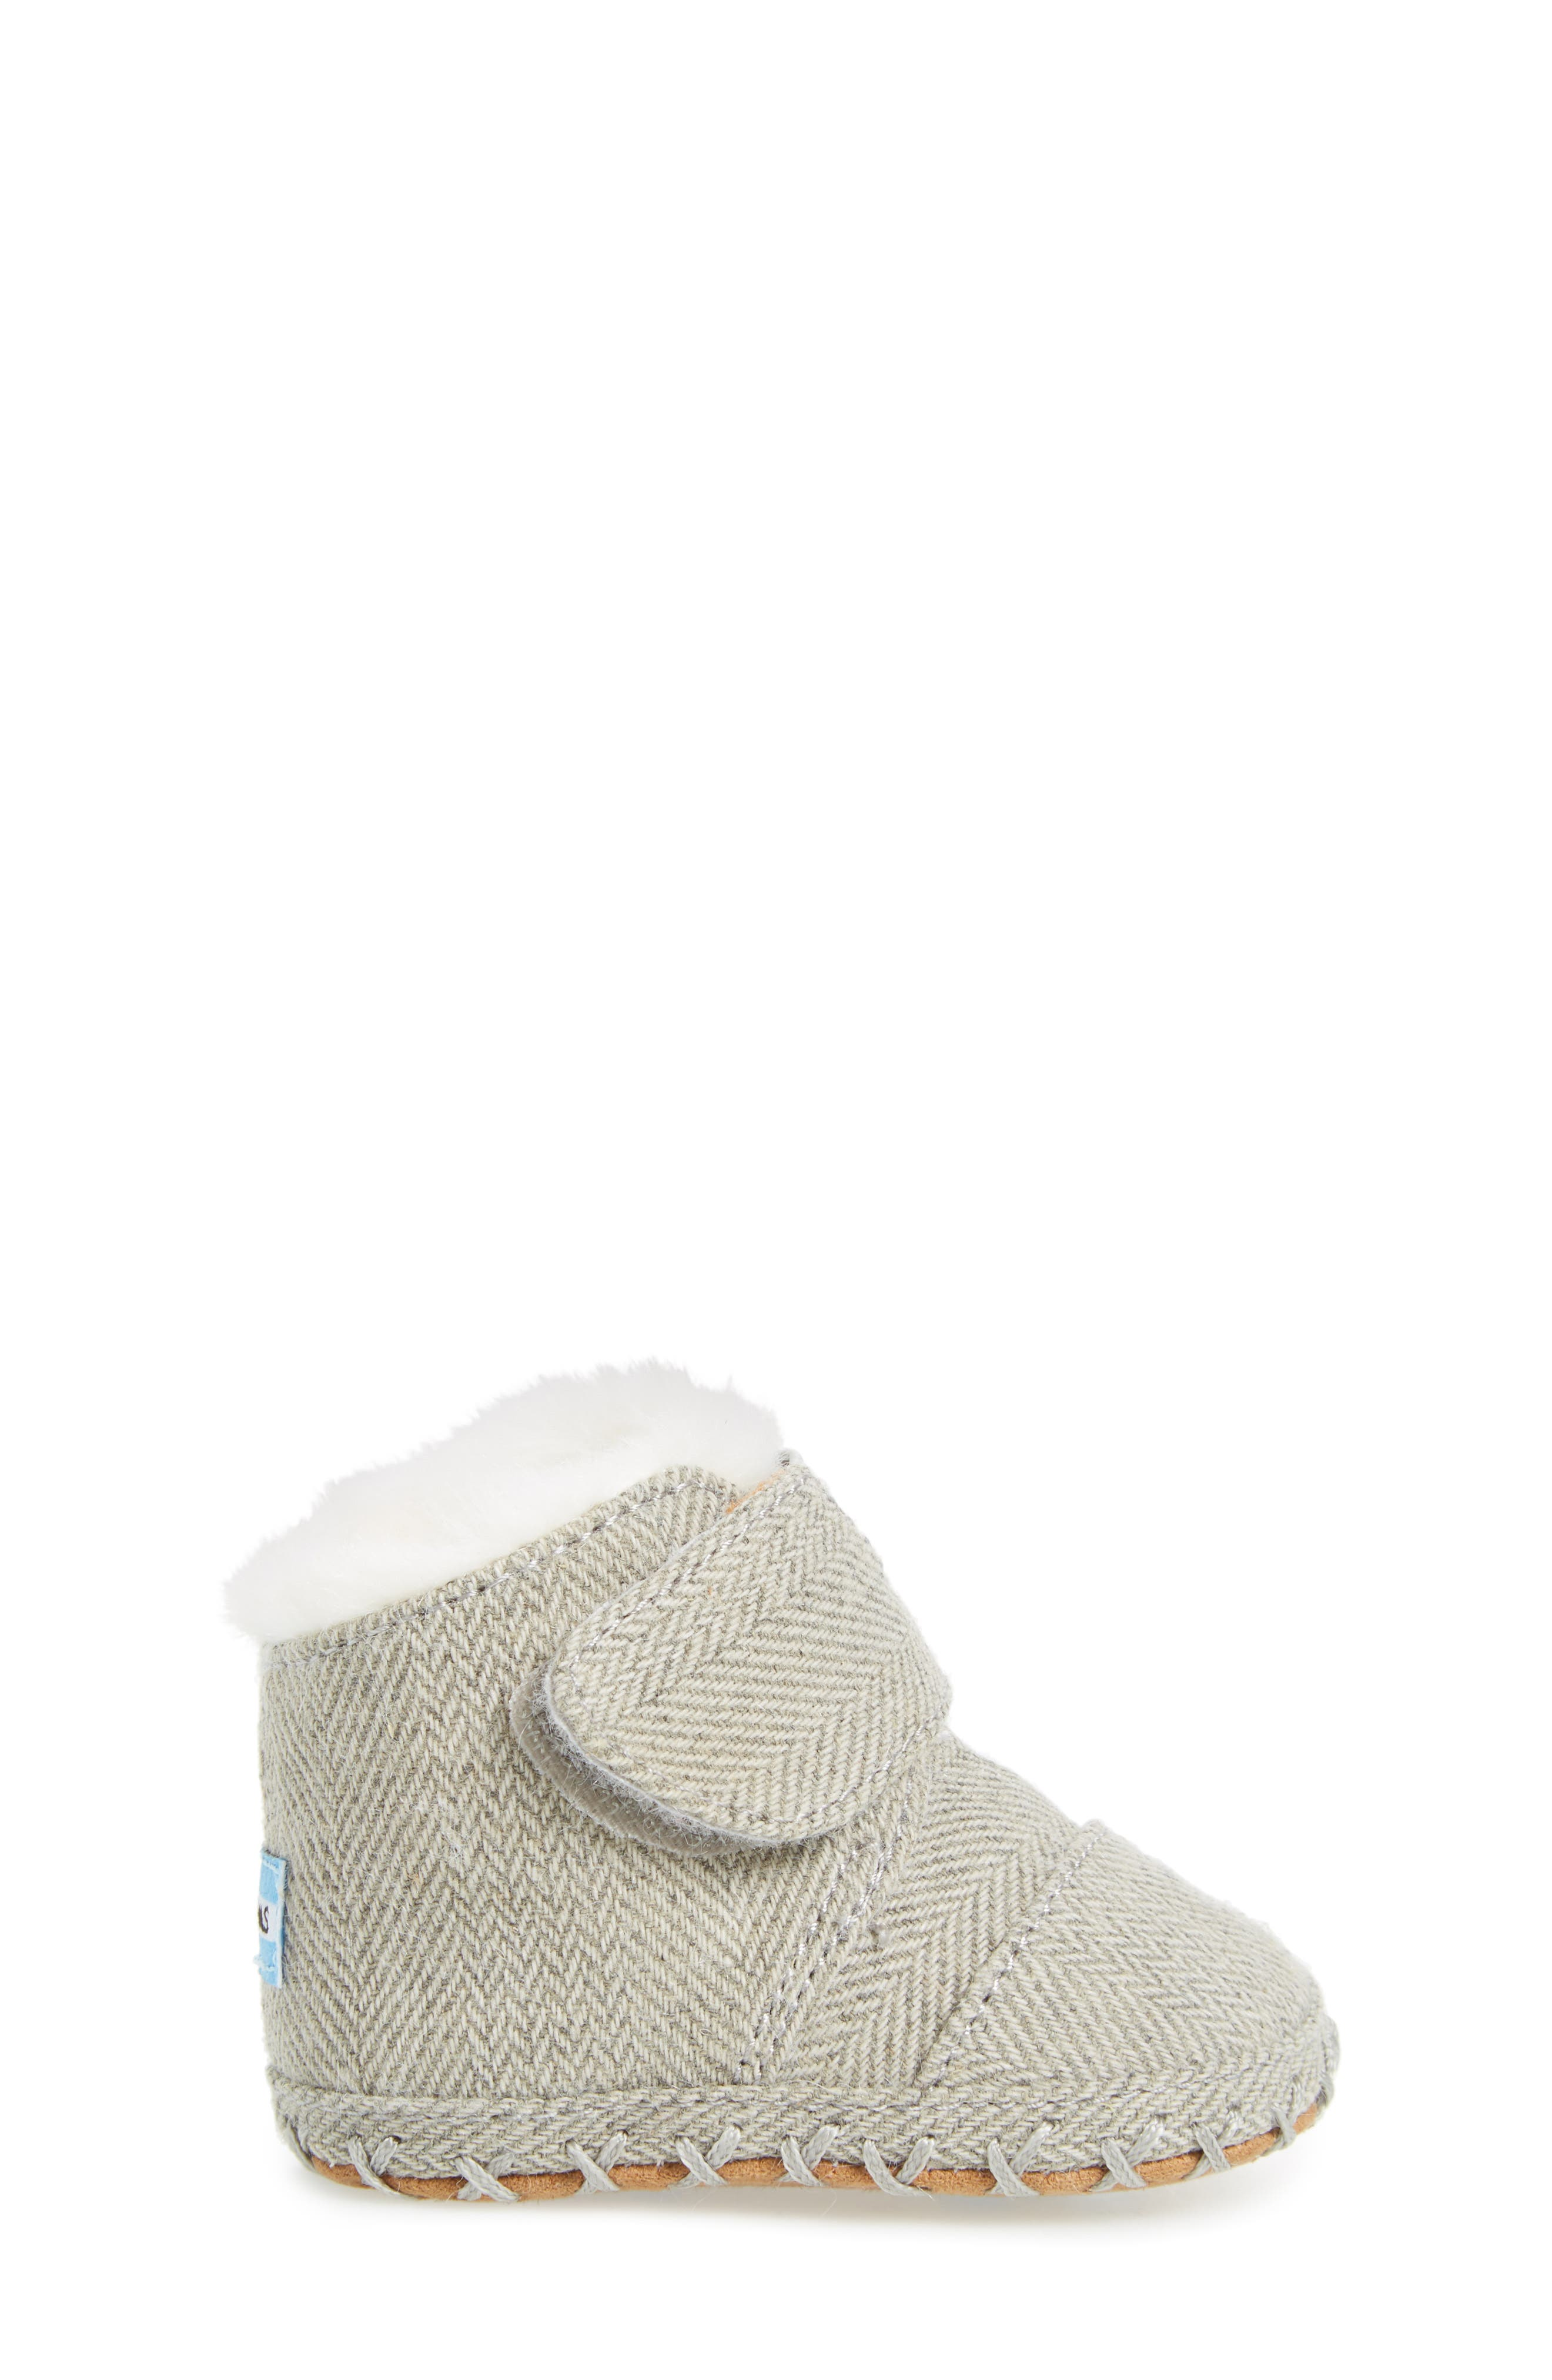 Alternate Image 3  - TOMS Tiny Cuna Faux Fur Crib Bootie (Baby)